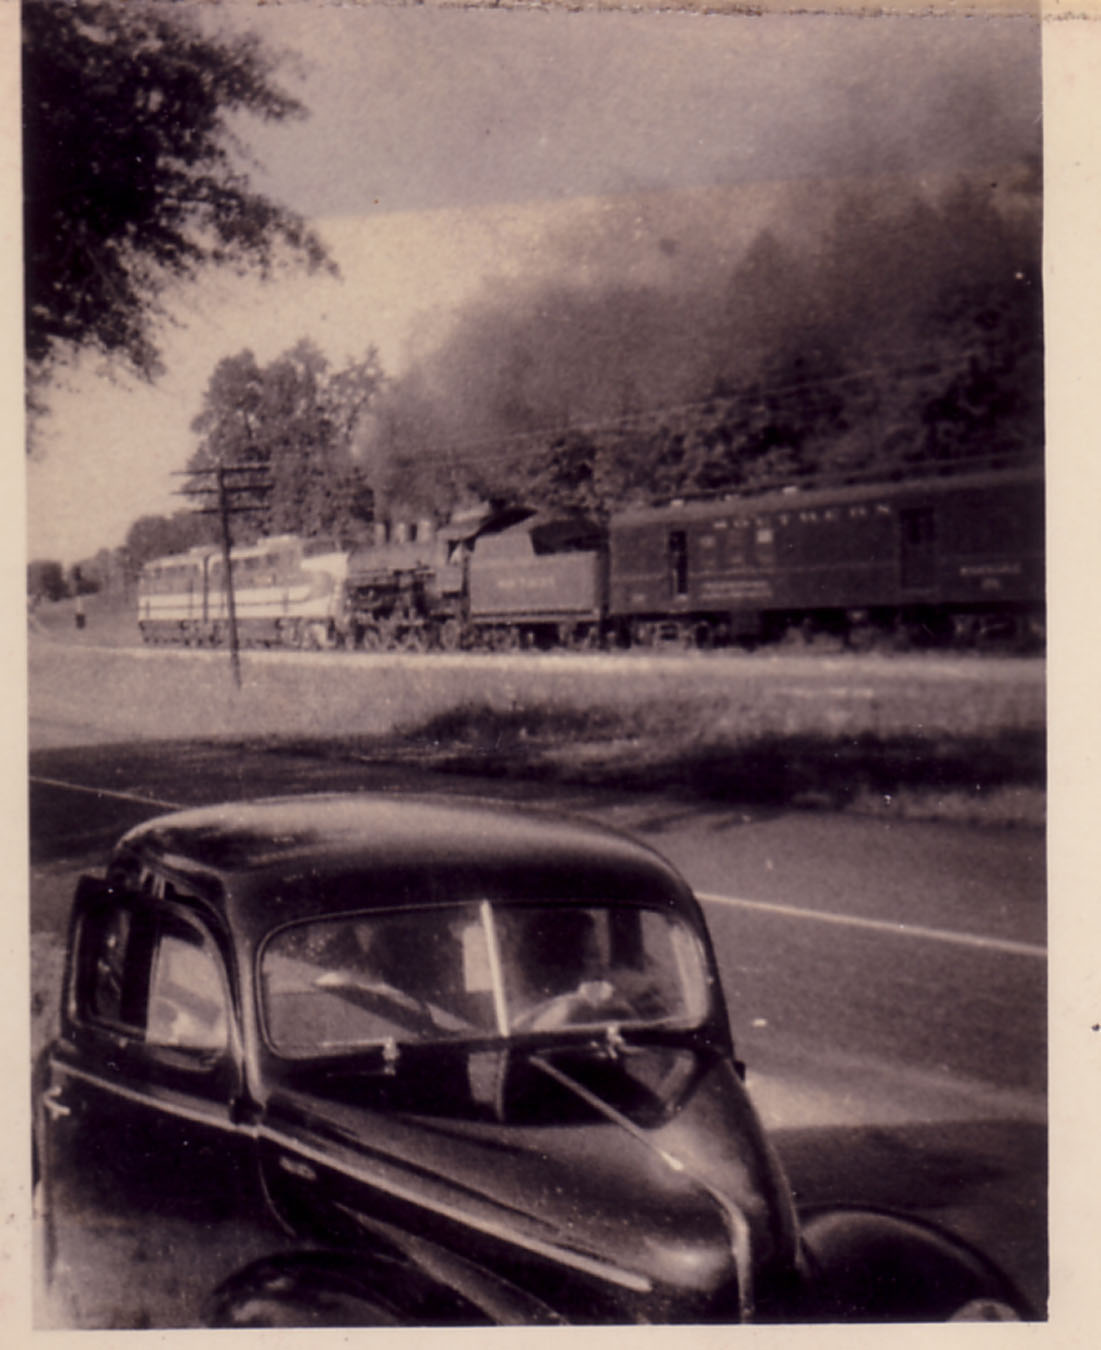 One of the last steam trains in service.  Photo taken late 1940's by Hudnalle McLean Sr.